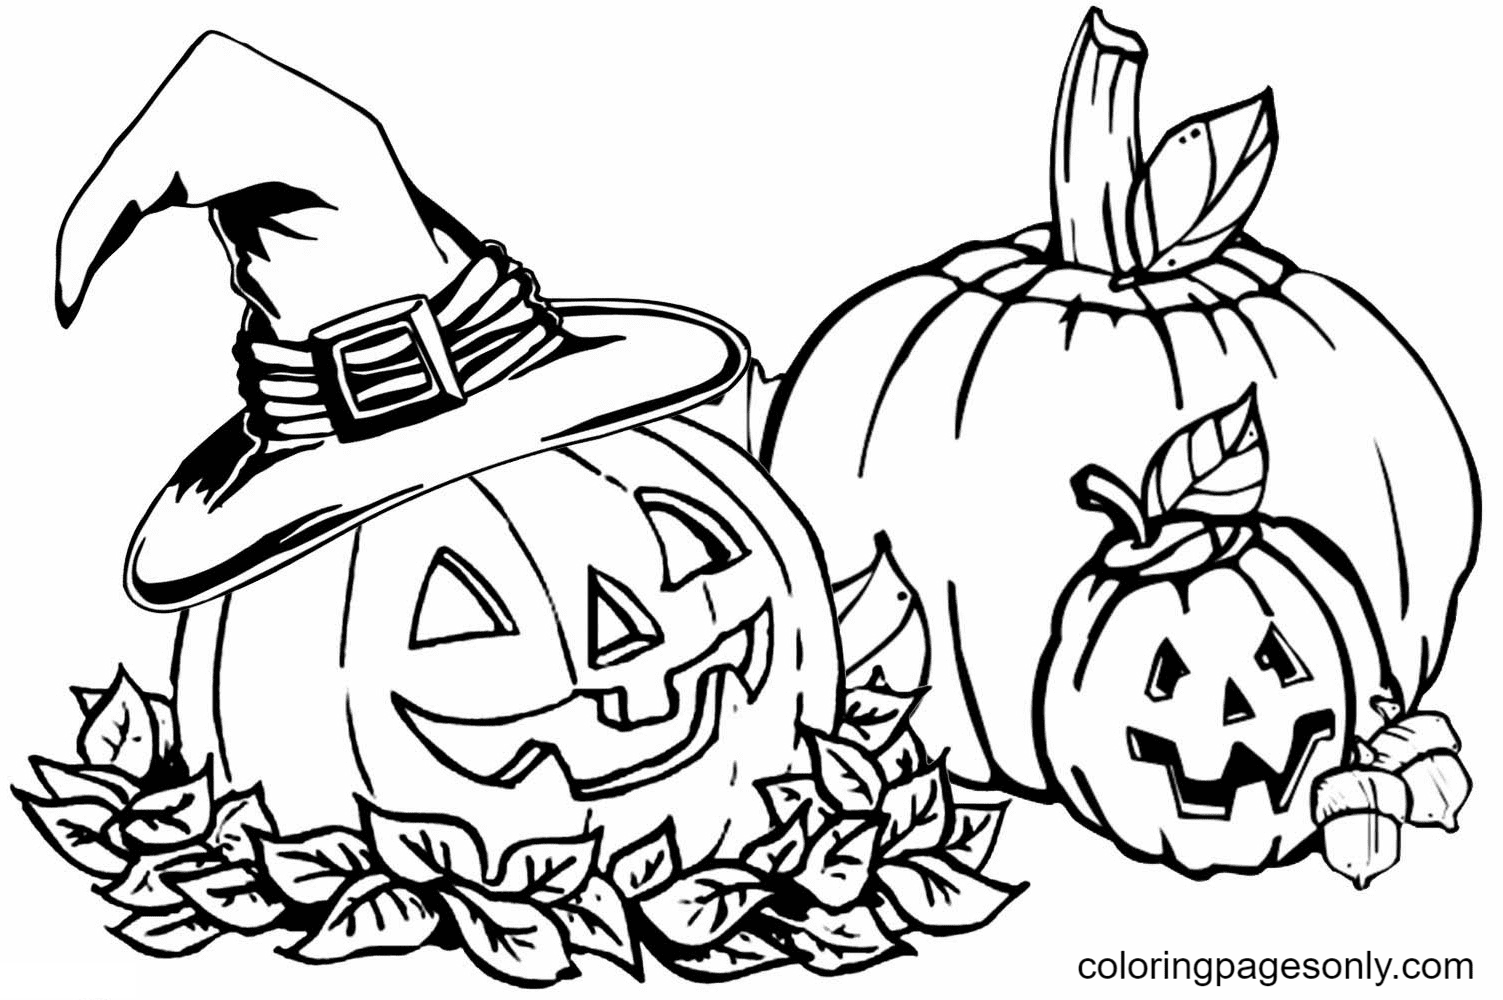 Halloween Pumpkin to Print Coloring Page